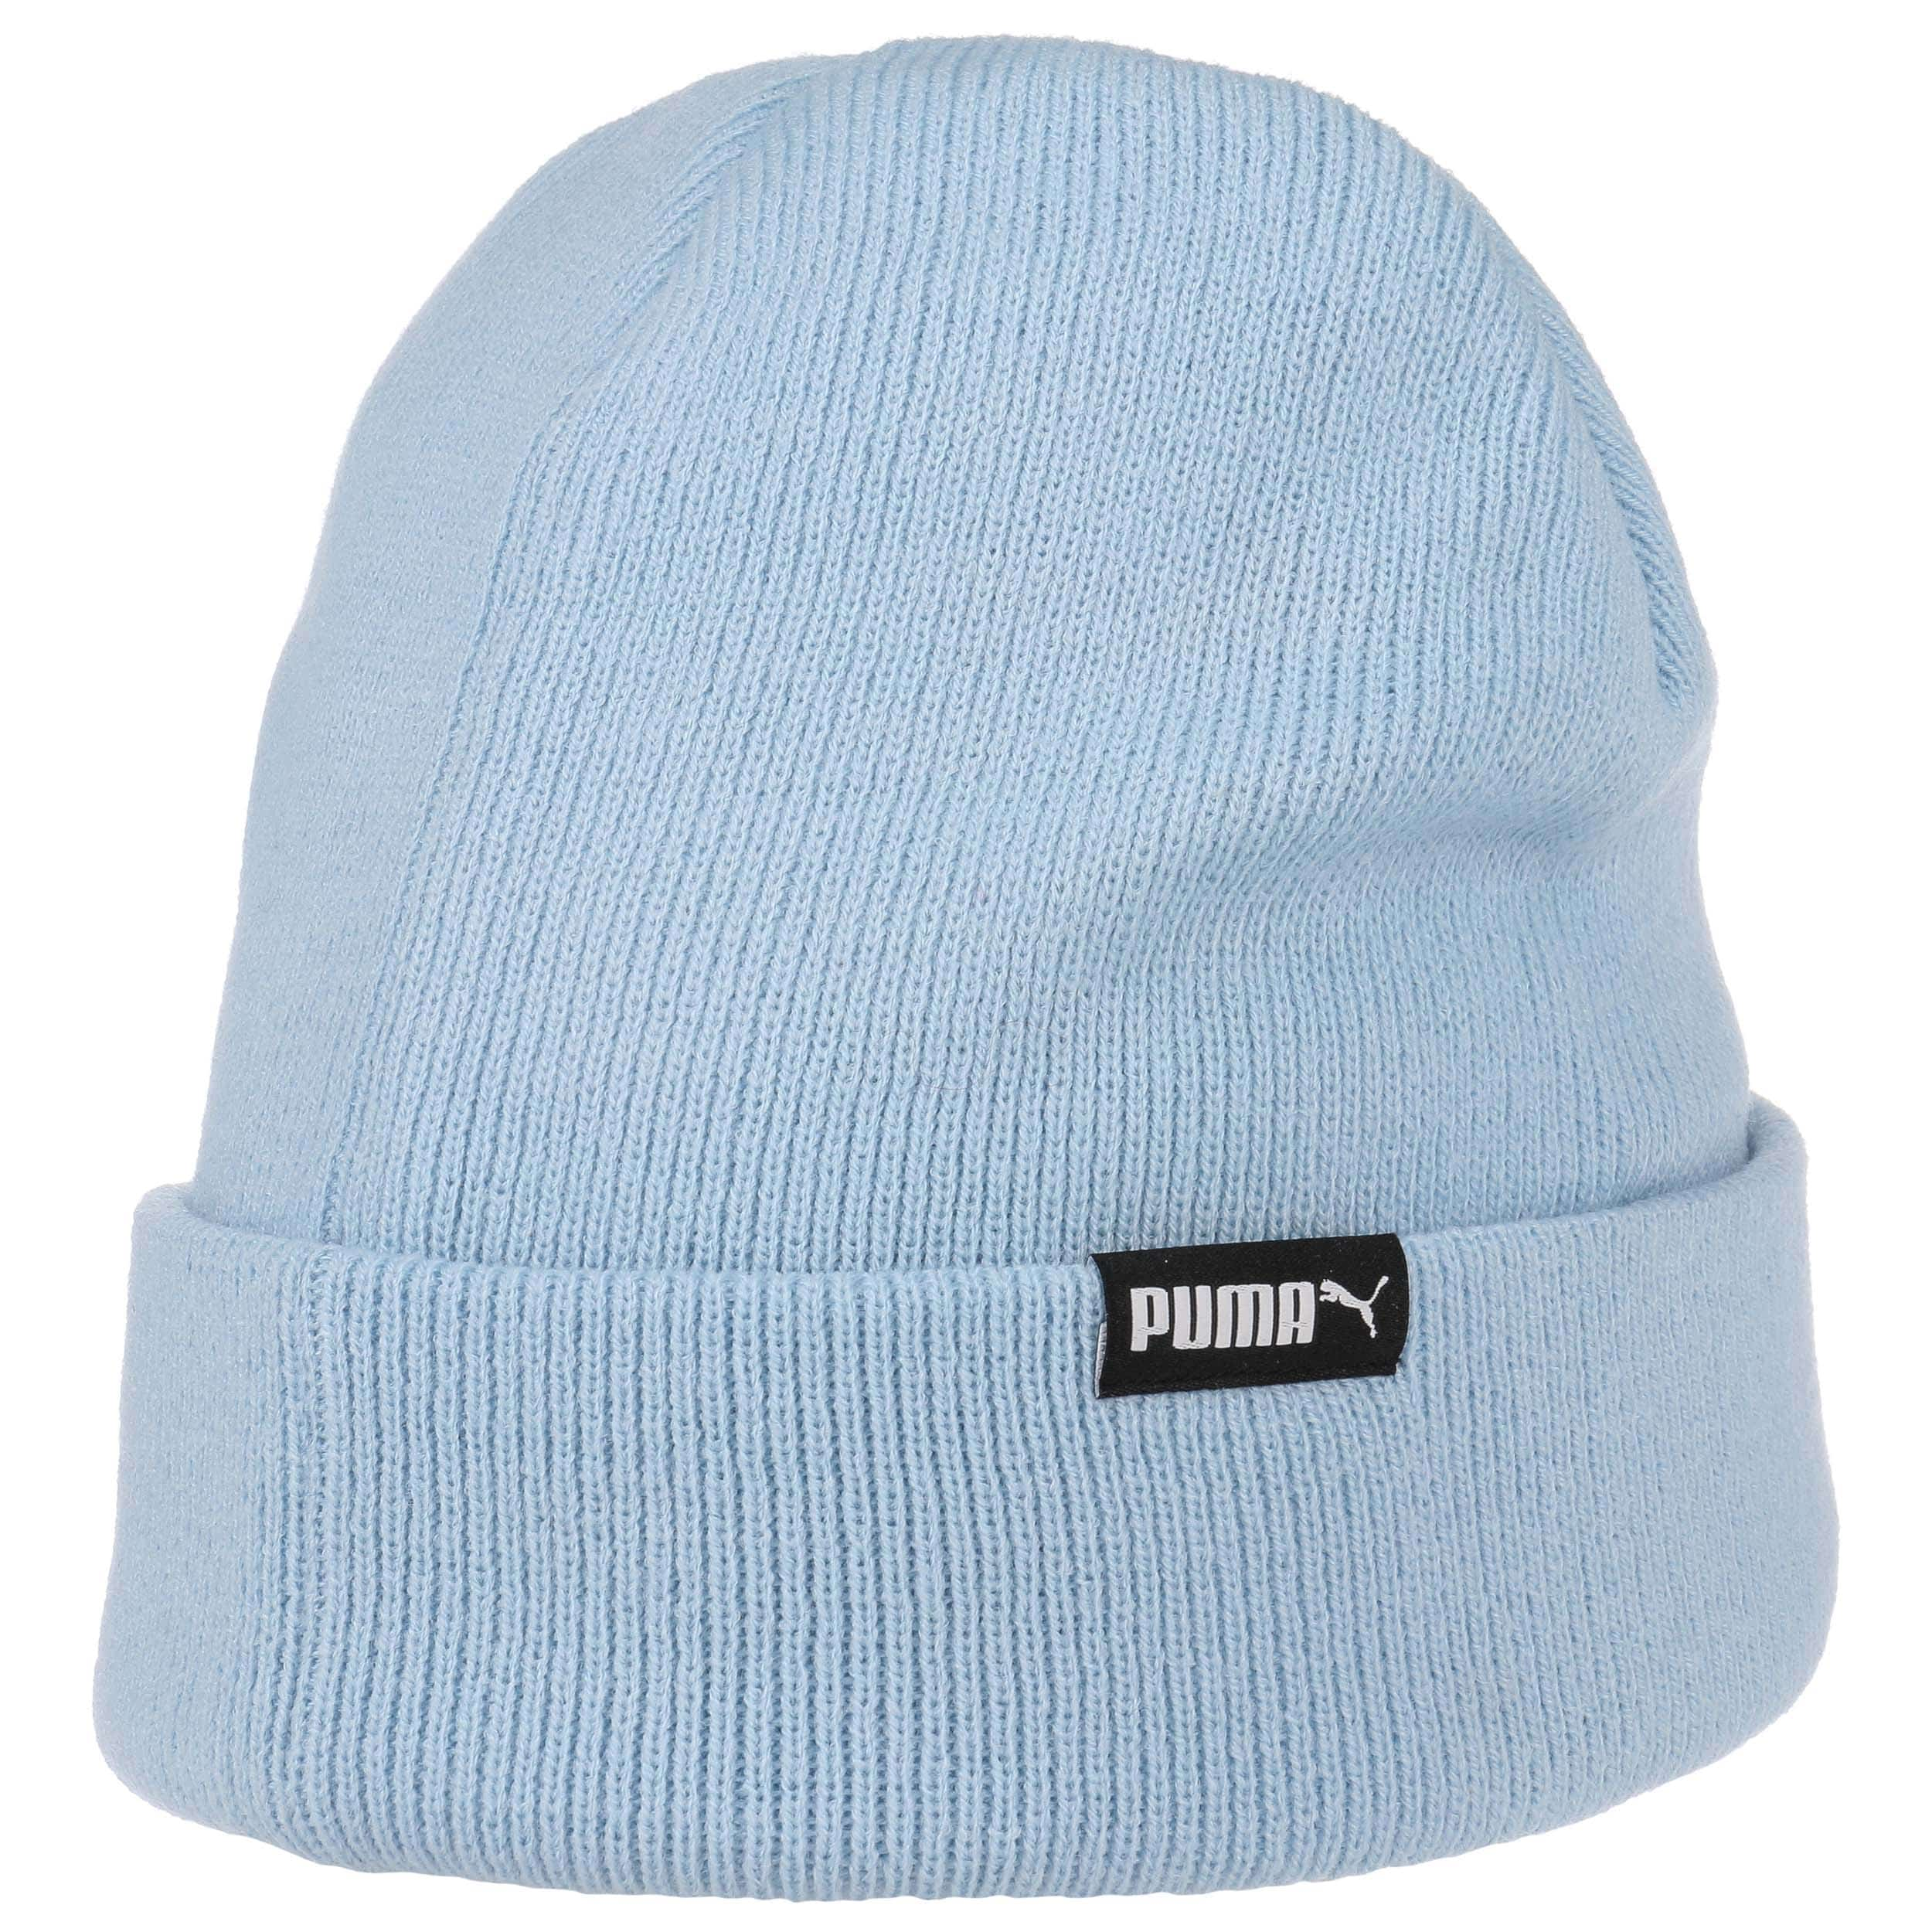 a2063896ea5 Mid Fit Beanie Hat. by PUMA